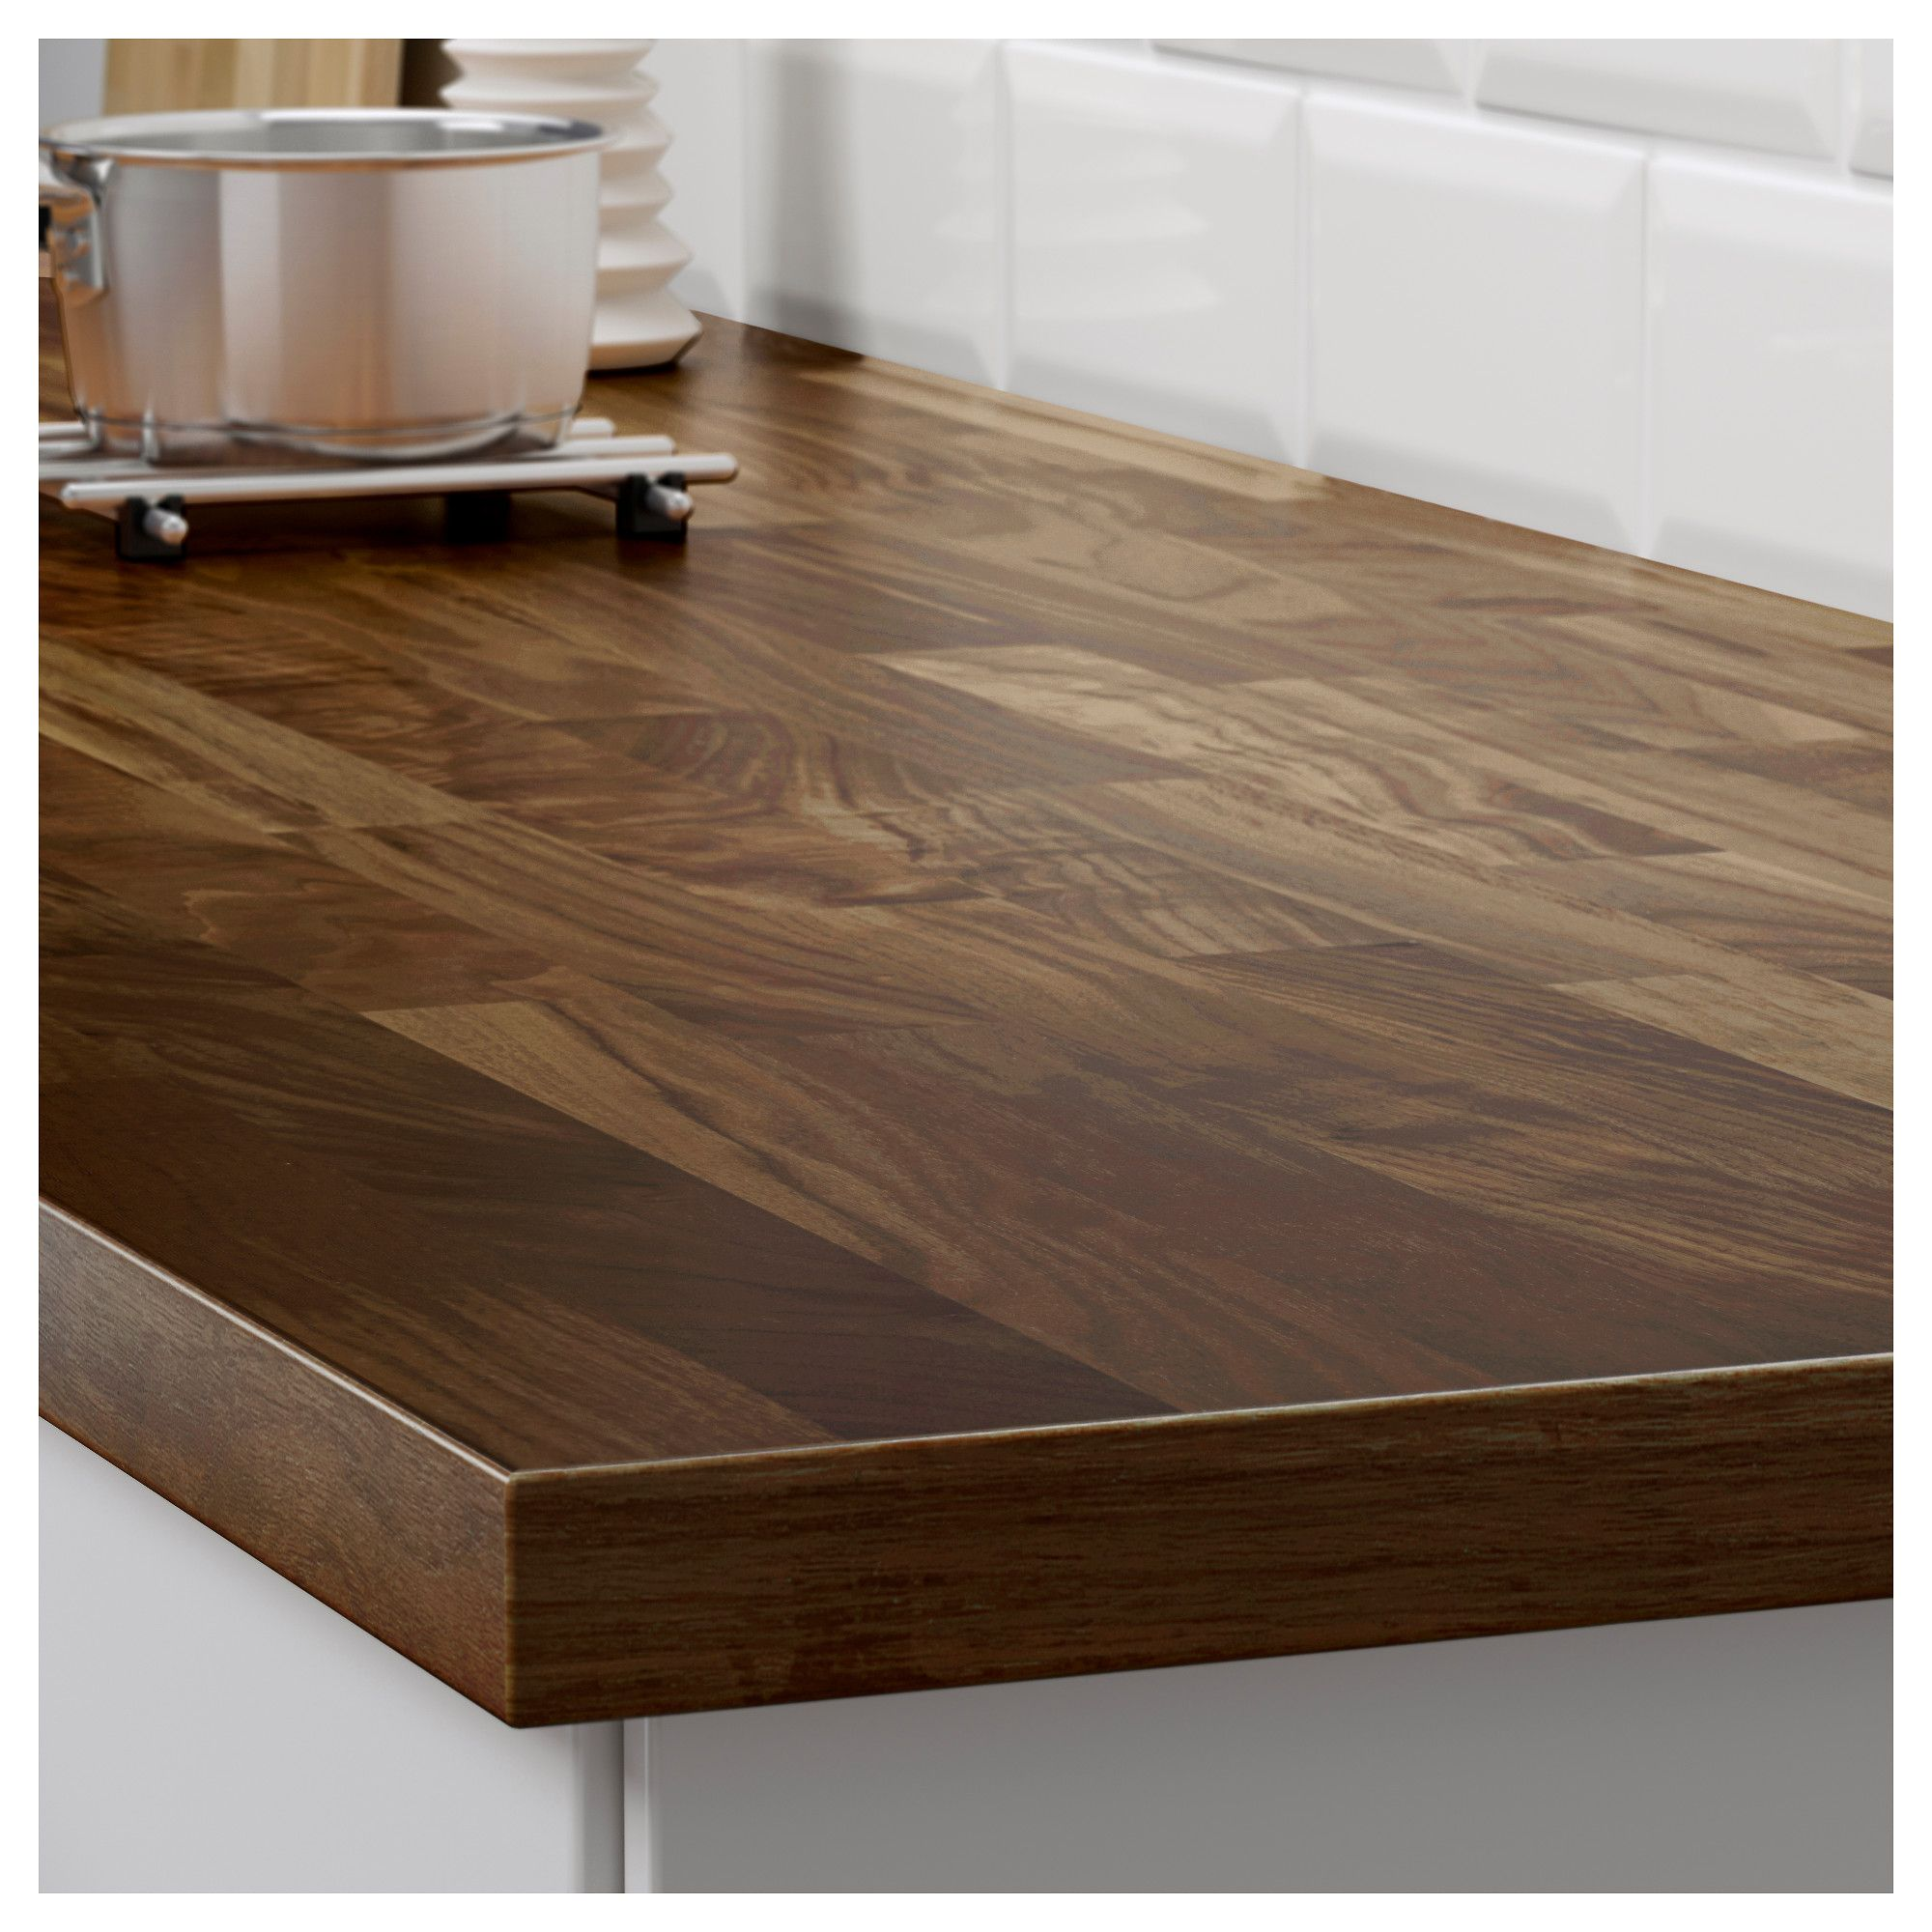 Ikea Karlby Countertop For Kitchen Island Walnut